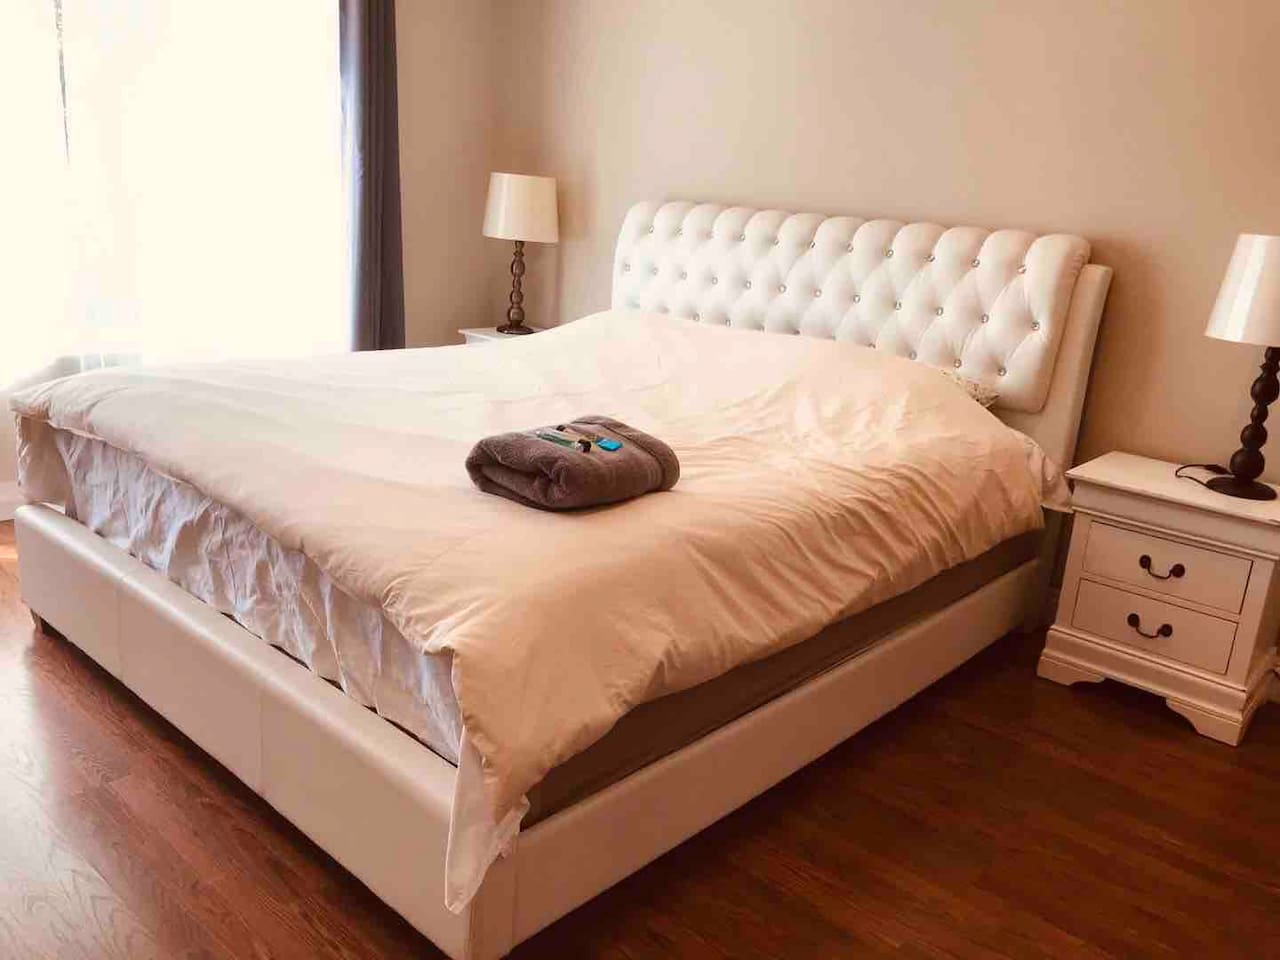 This newly remodels master suite is huge w/lots of natural sunlight. It has a King bed, a dress, two night stands, a desk, and a chair. Room is facing backyard so it's very quiet at night. Blackout curtain provides comfort for a good night sleep.